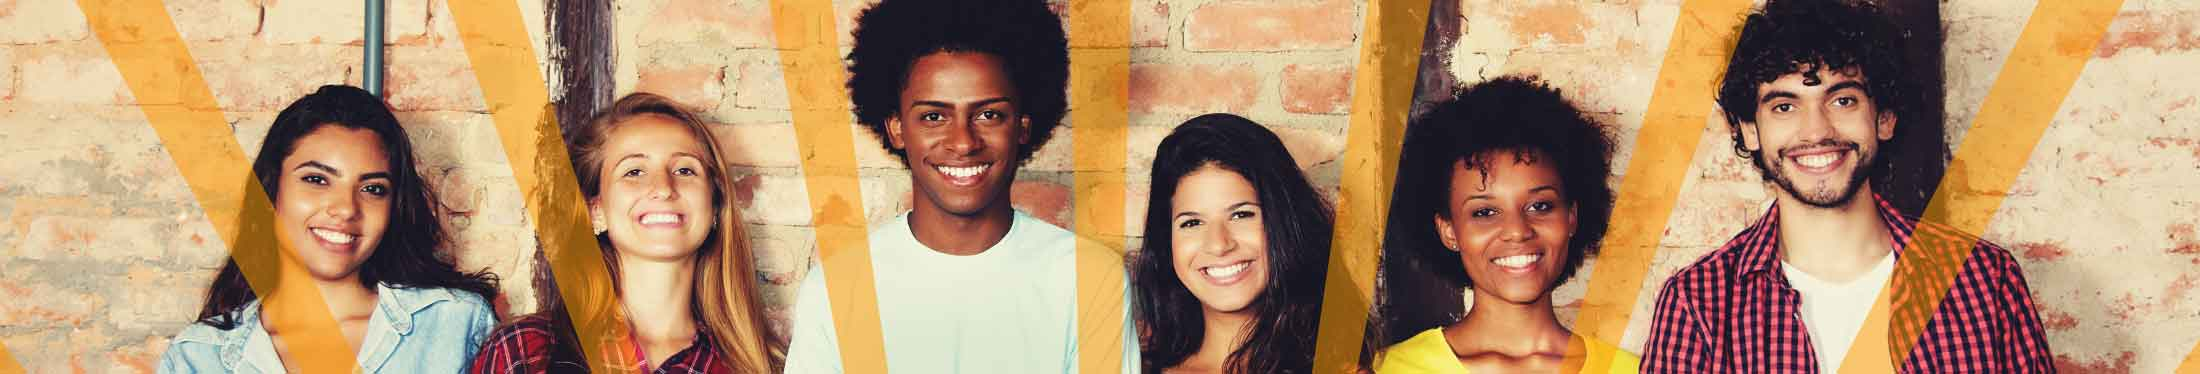 Photo: 6 diverse smiling teenagers